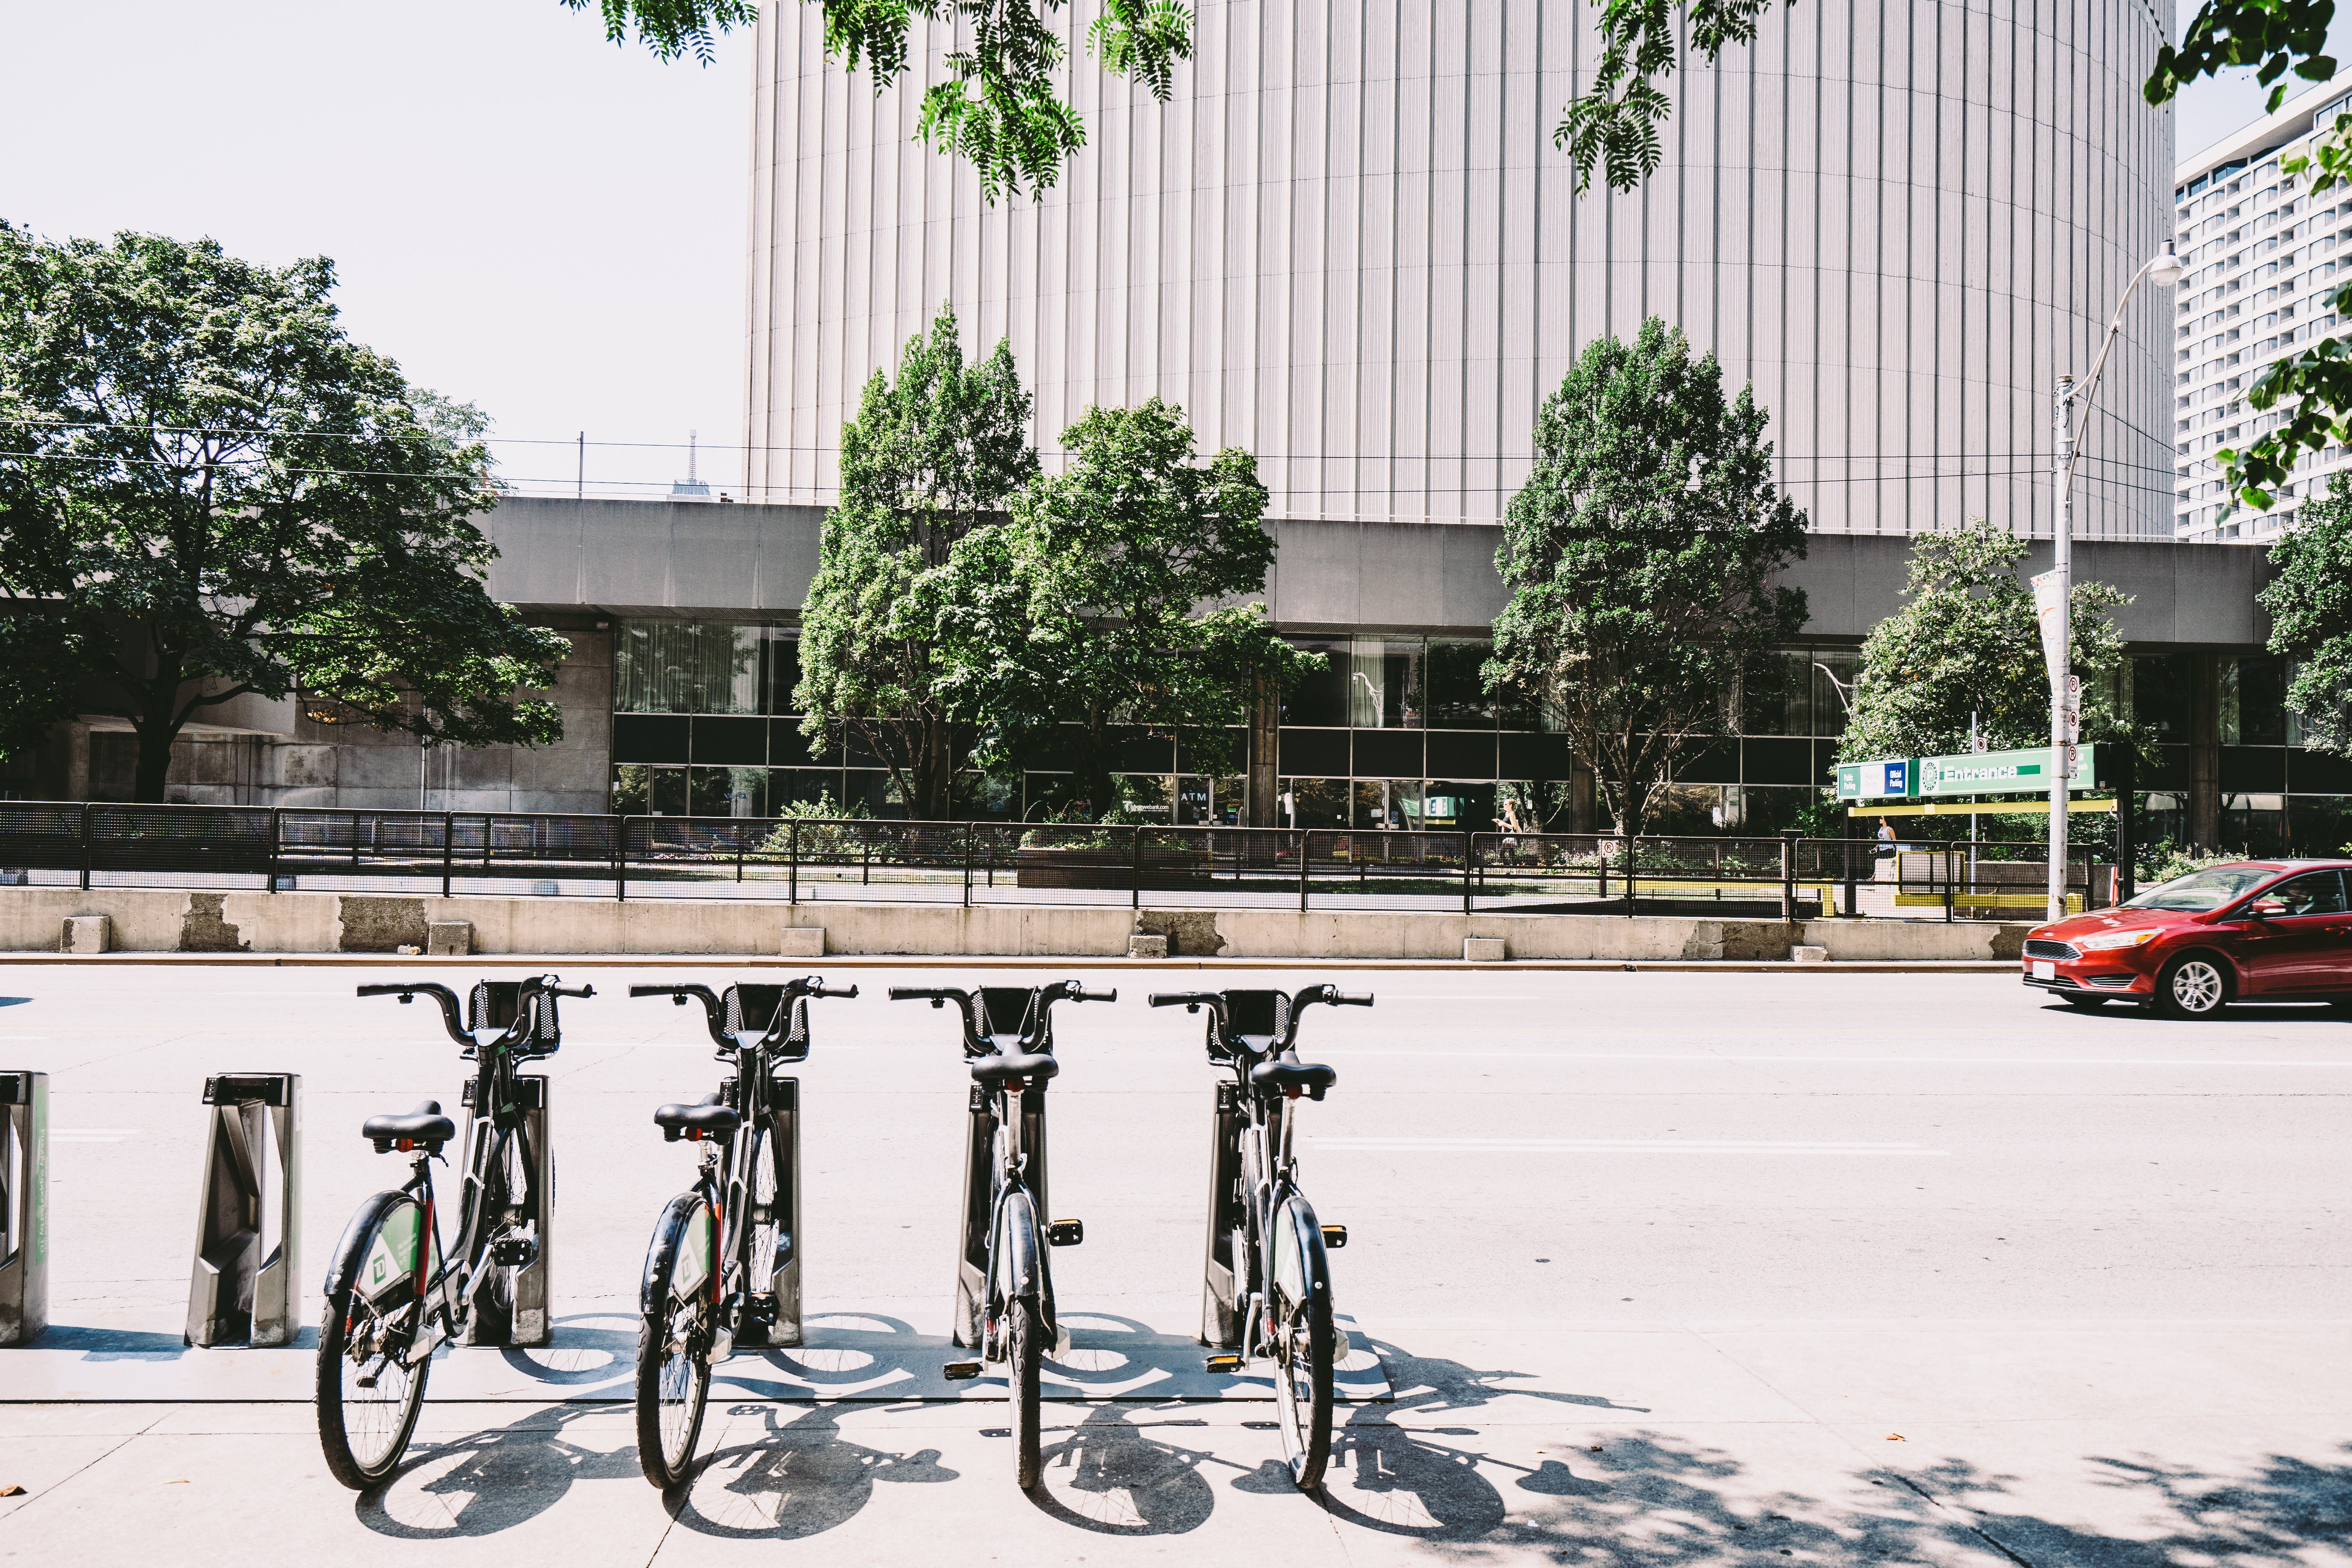 Four Black Parked Bicycles Near the Road